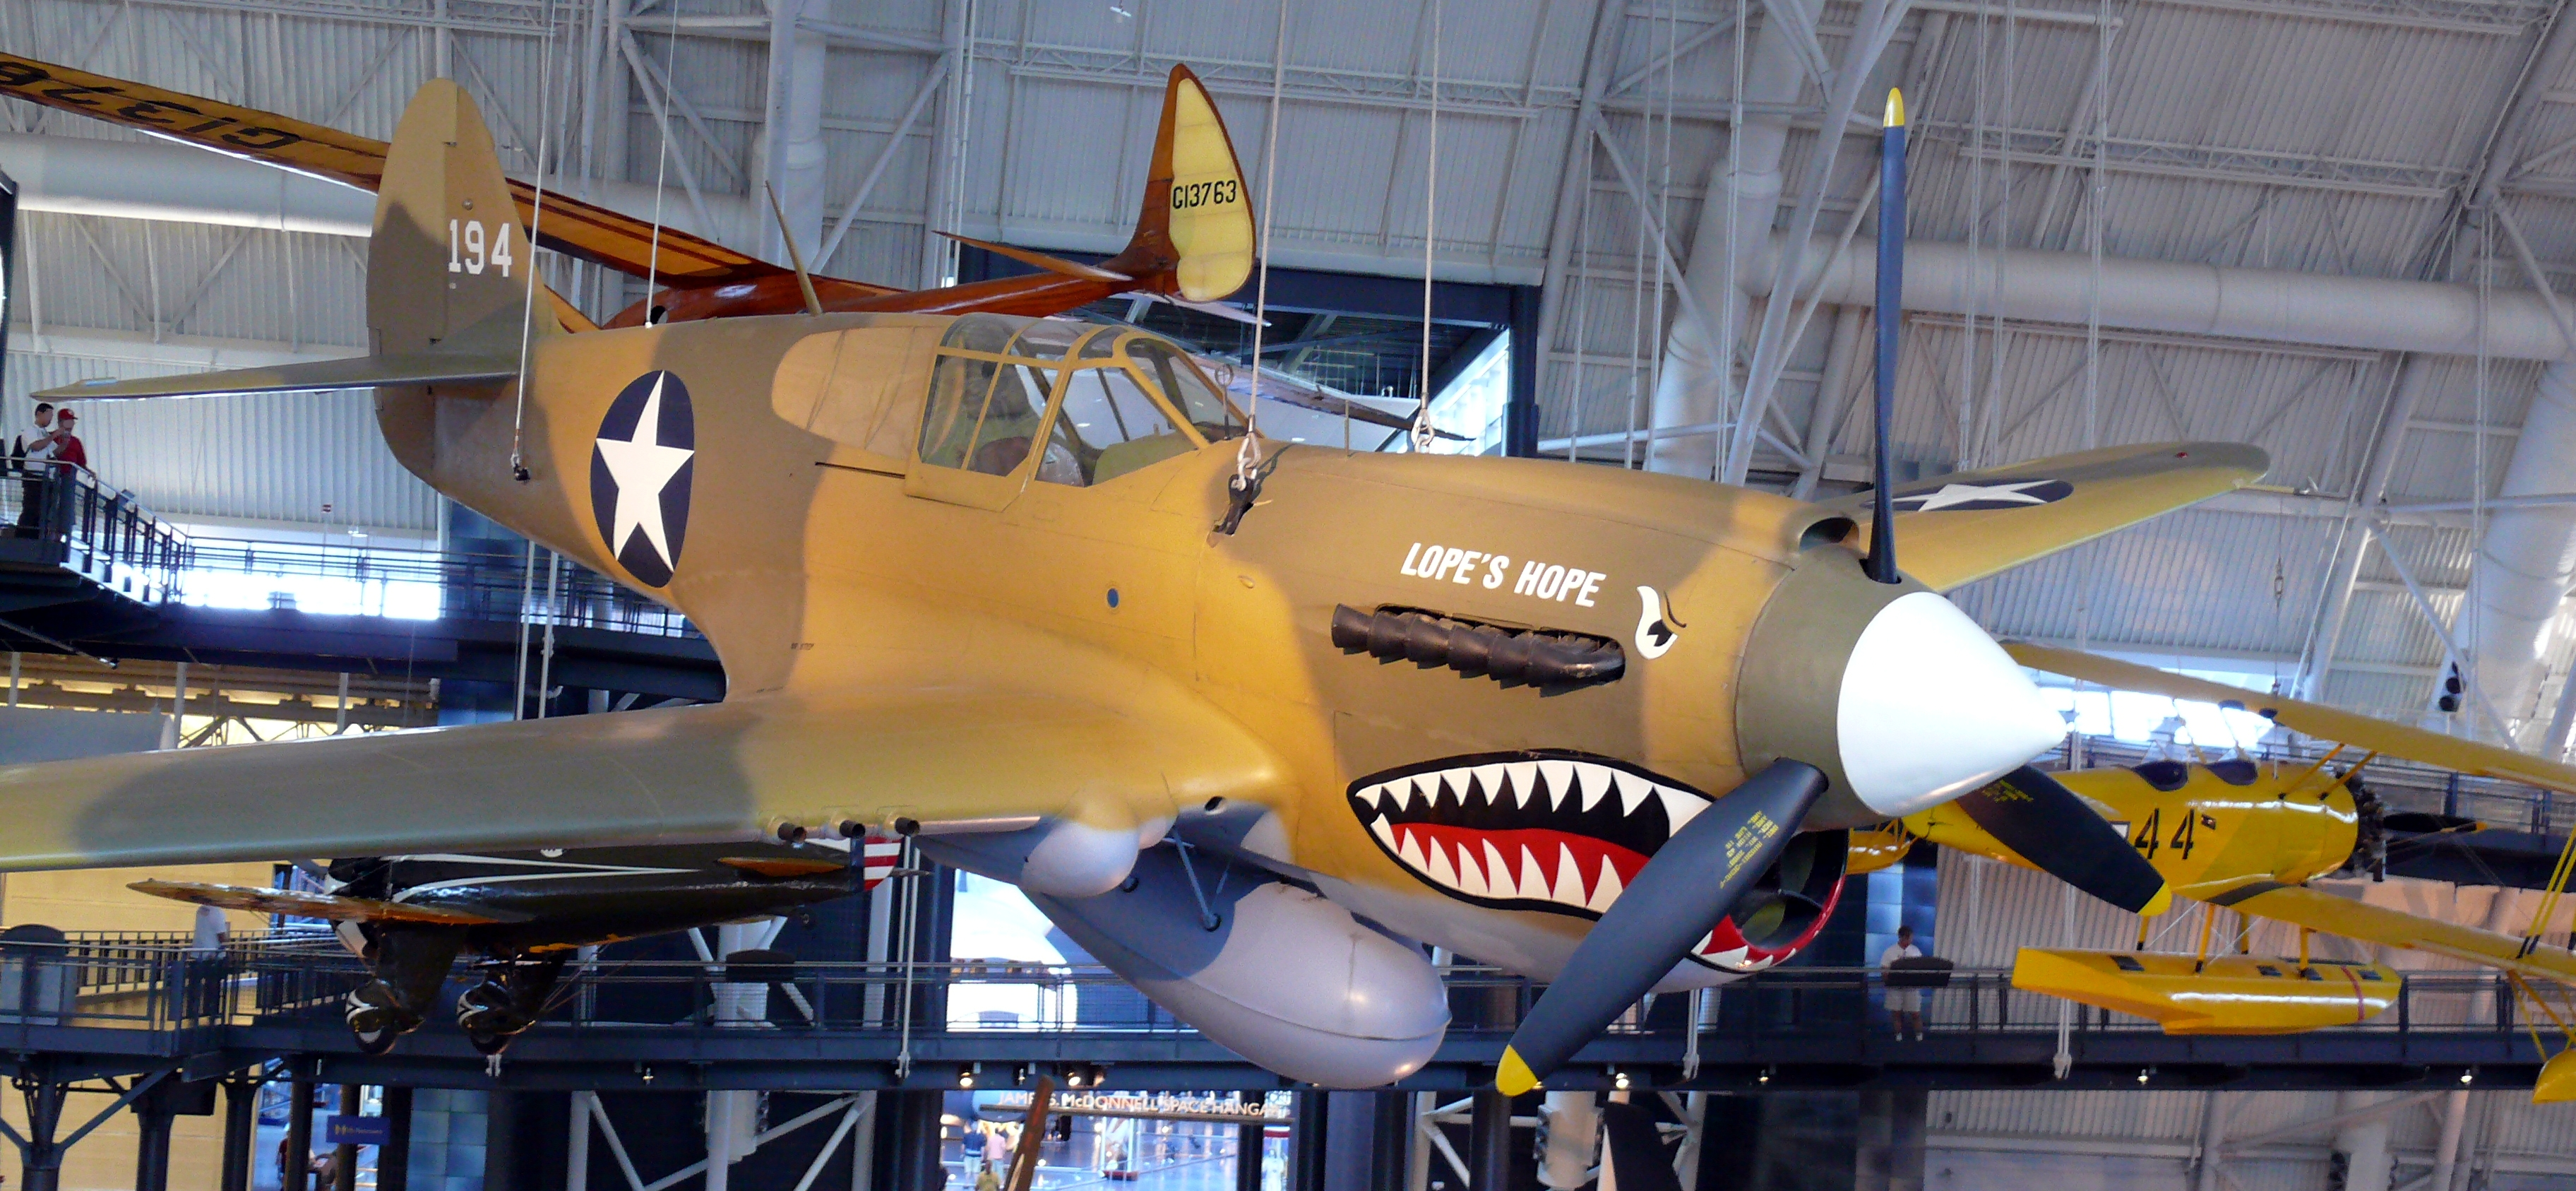 File:Curtiss P-40 Kittyhawk.JPG - Wikimedia Commons